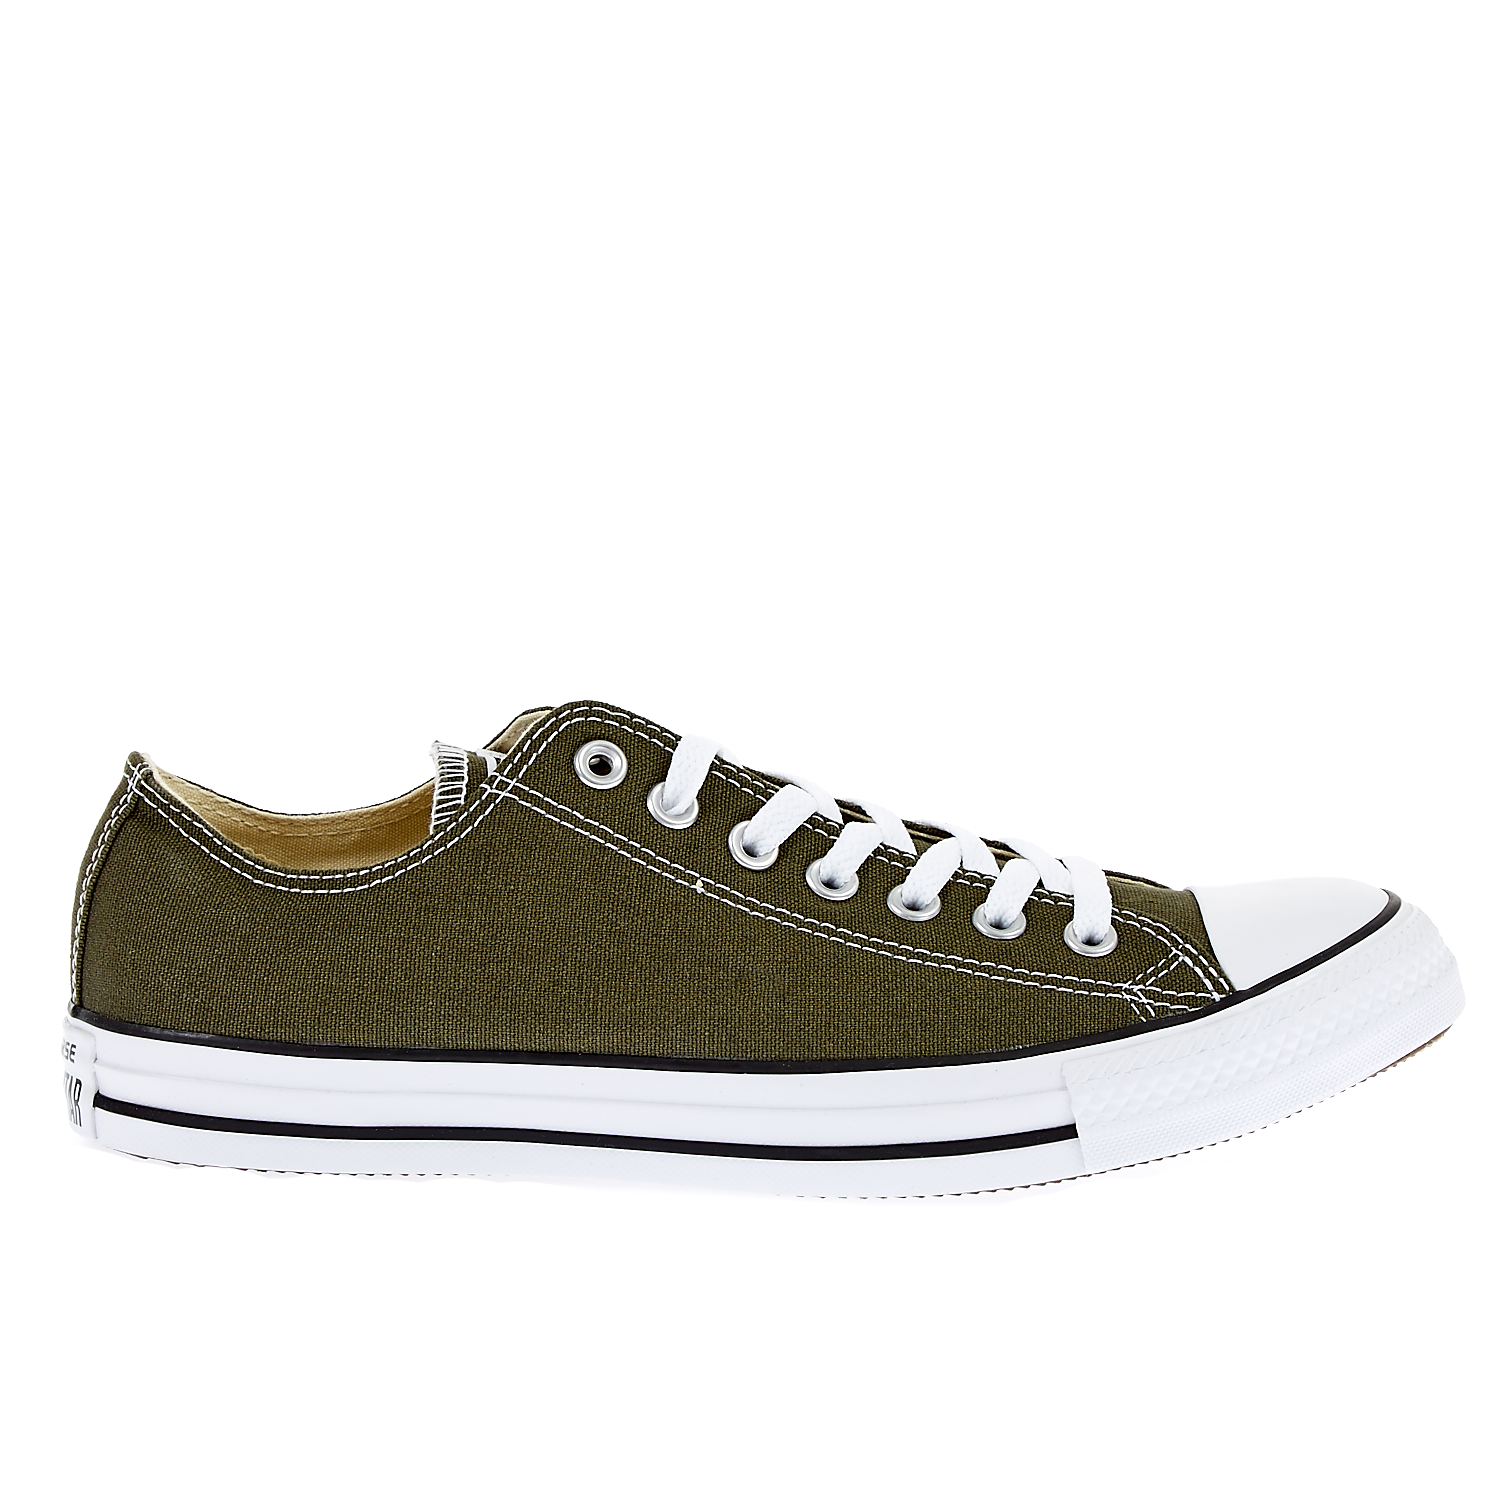 400afb71328 CONVERSE - Unisex παπούτσια Chuck Taylor All Star Ox λαδί